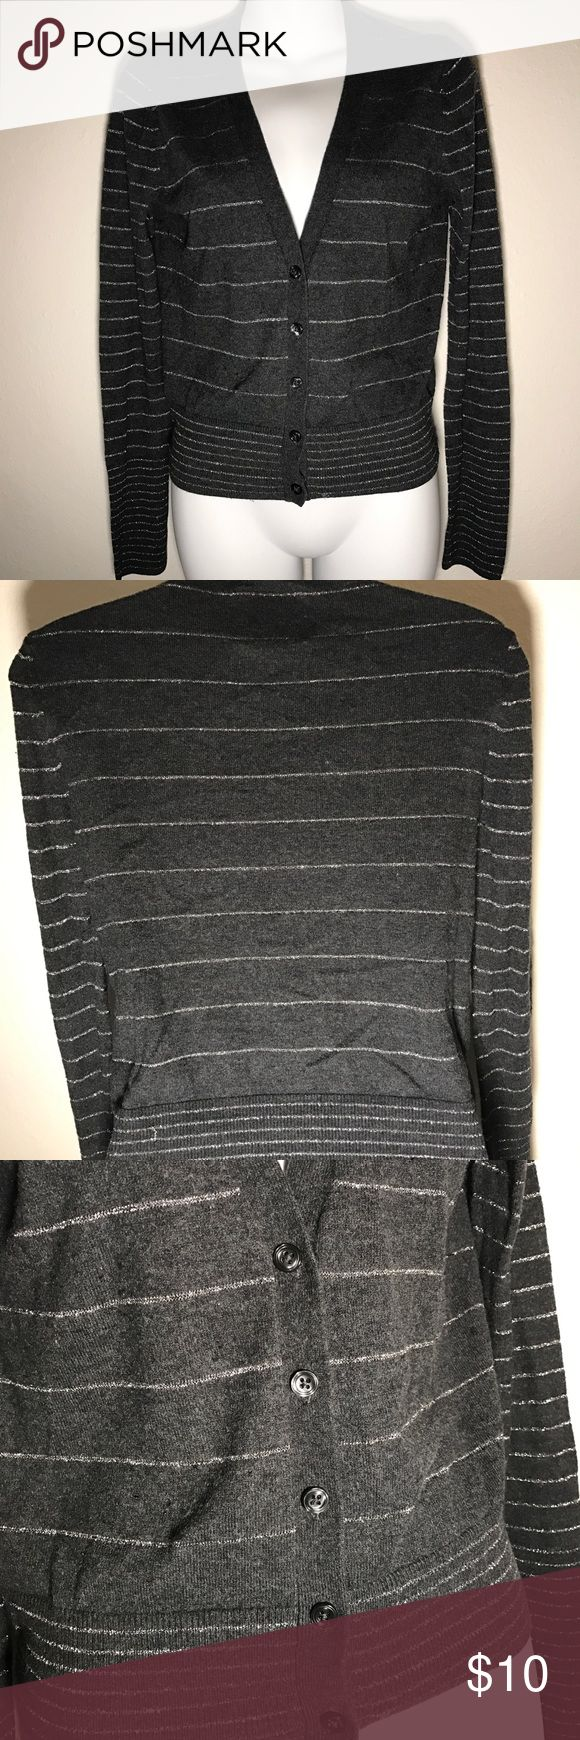 American eagle gray and silver Cardigan medium Pre-owned. Great condition! American Eagle Outfitters Sweaters Cardigans